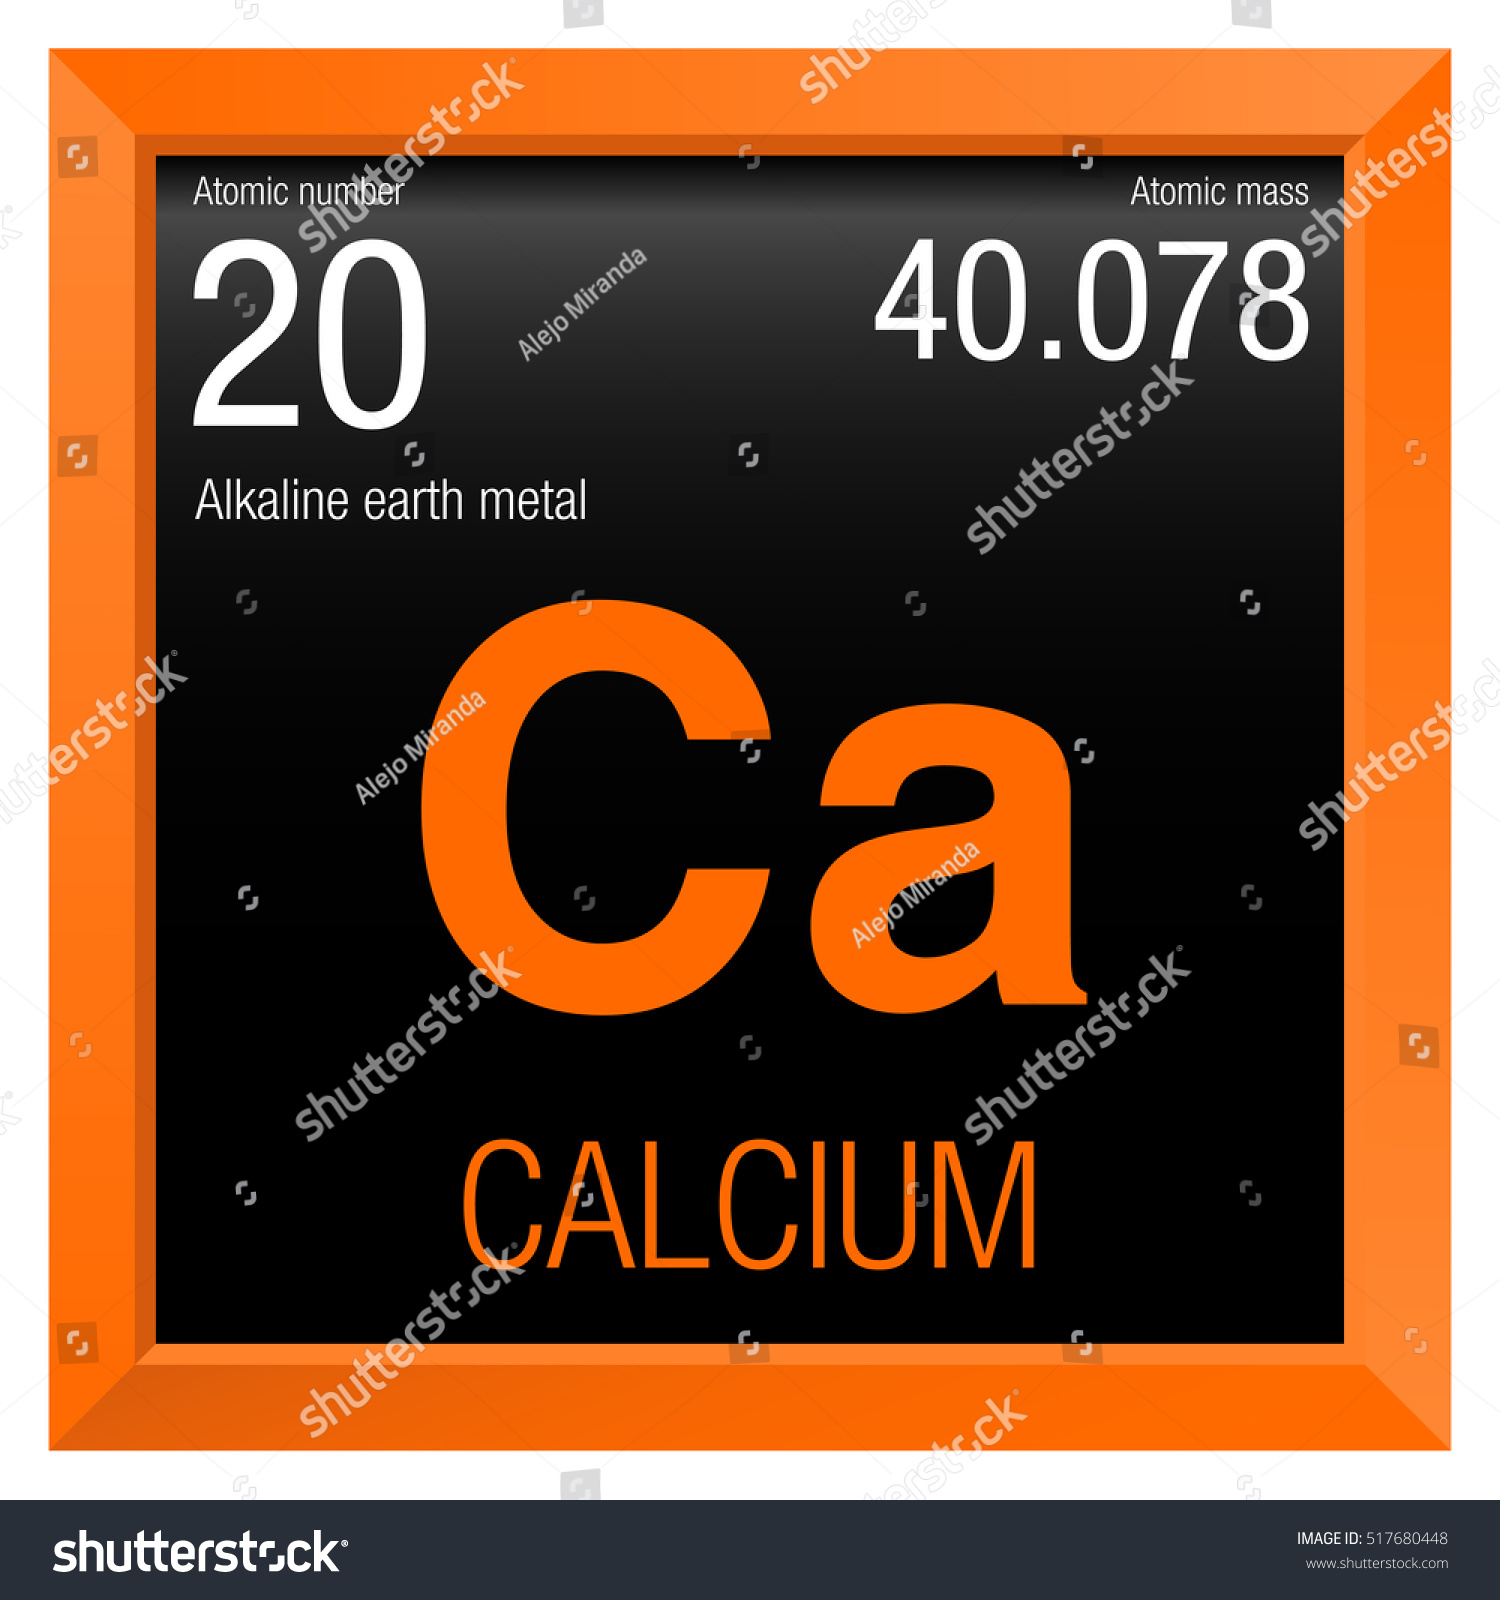 Calcium symbol element number 20 periodic stock vector 517680448 calcium symbol element number 20 of the periodic table of the elements chemistry buycottarizona Image collections